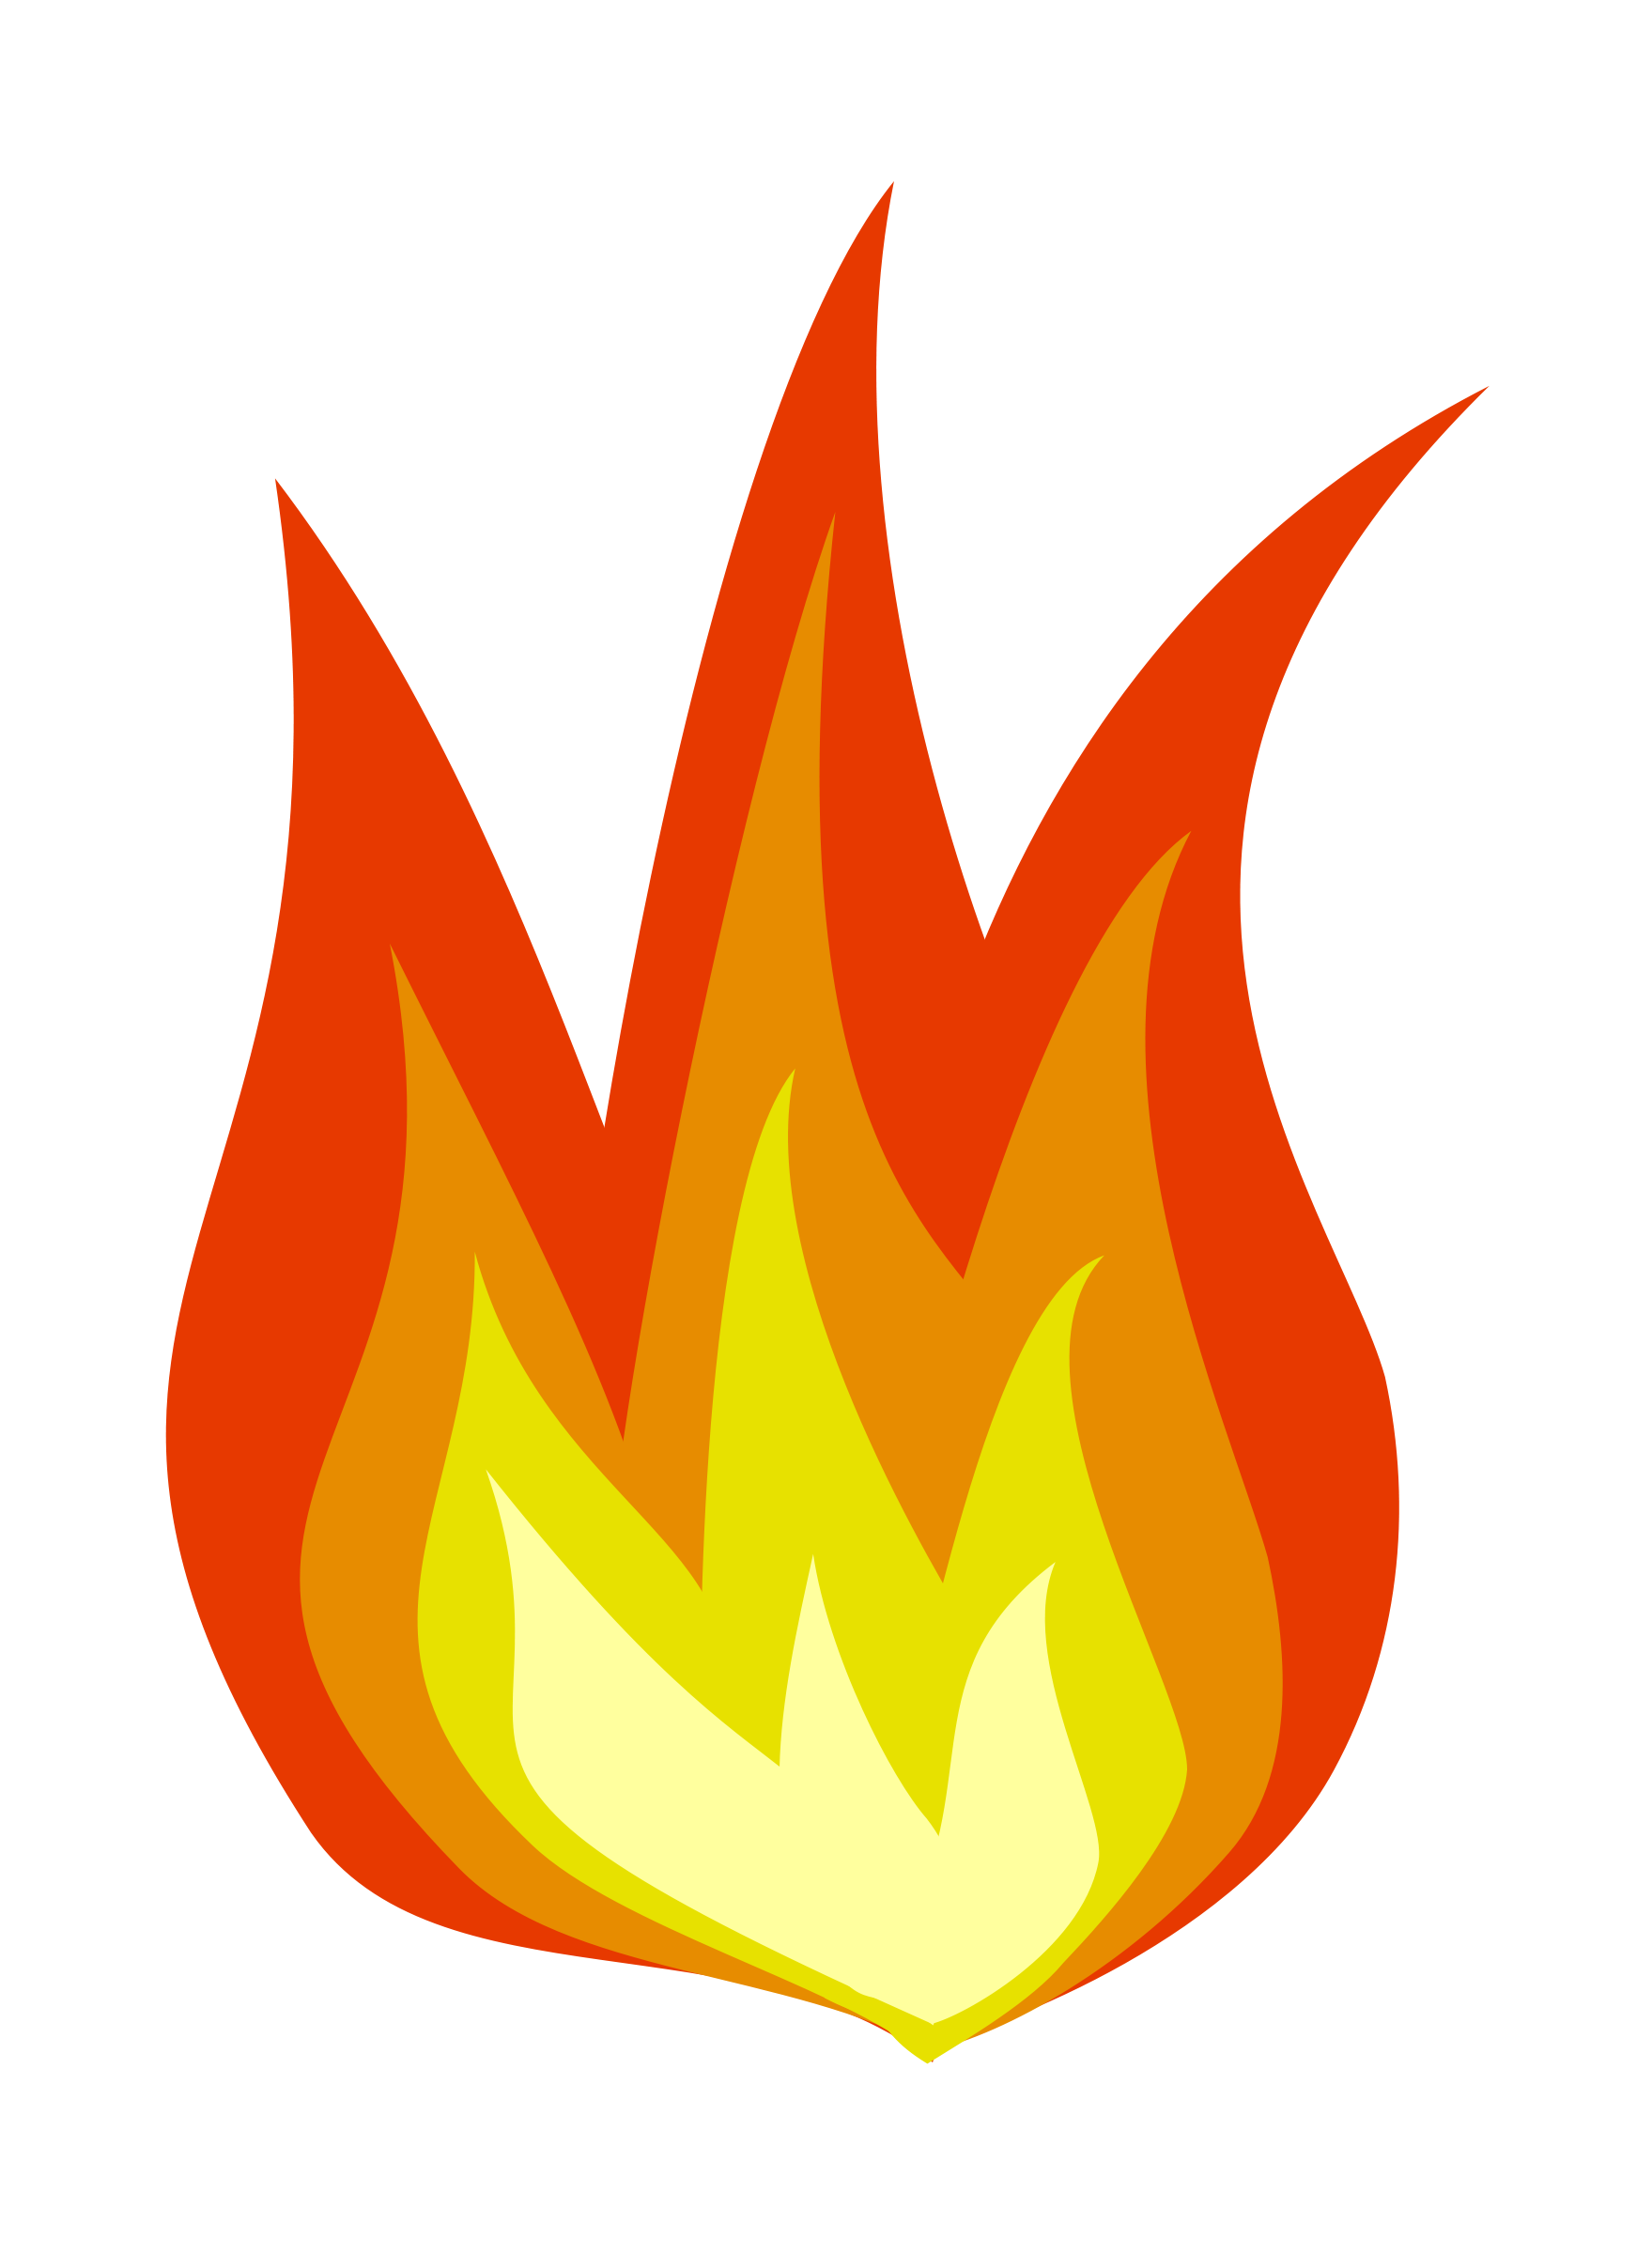 2 in flames clipart vector transparent download Fire clipart free download clip art on 2 – Gclipart.com vector transparent download